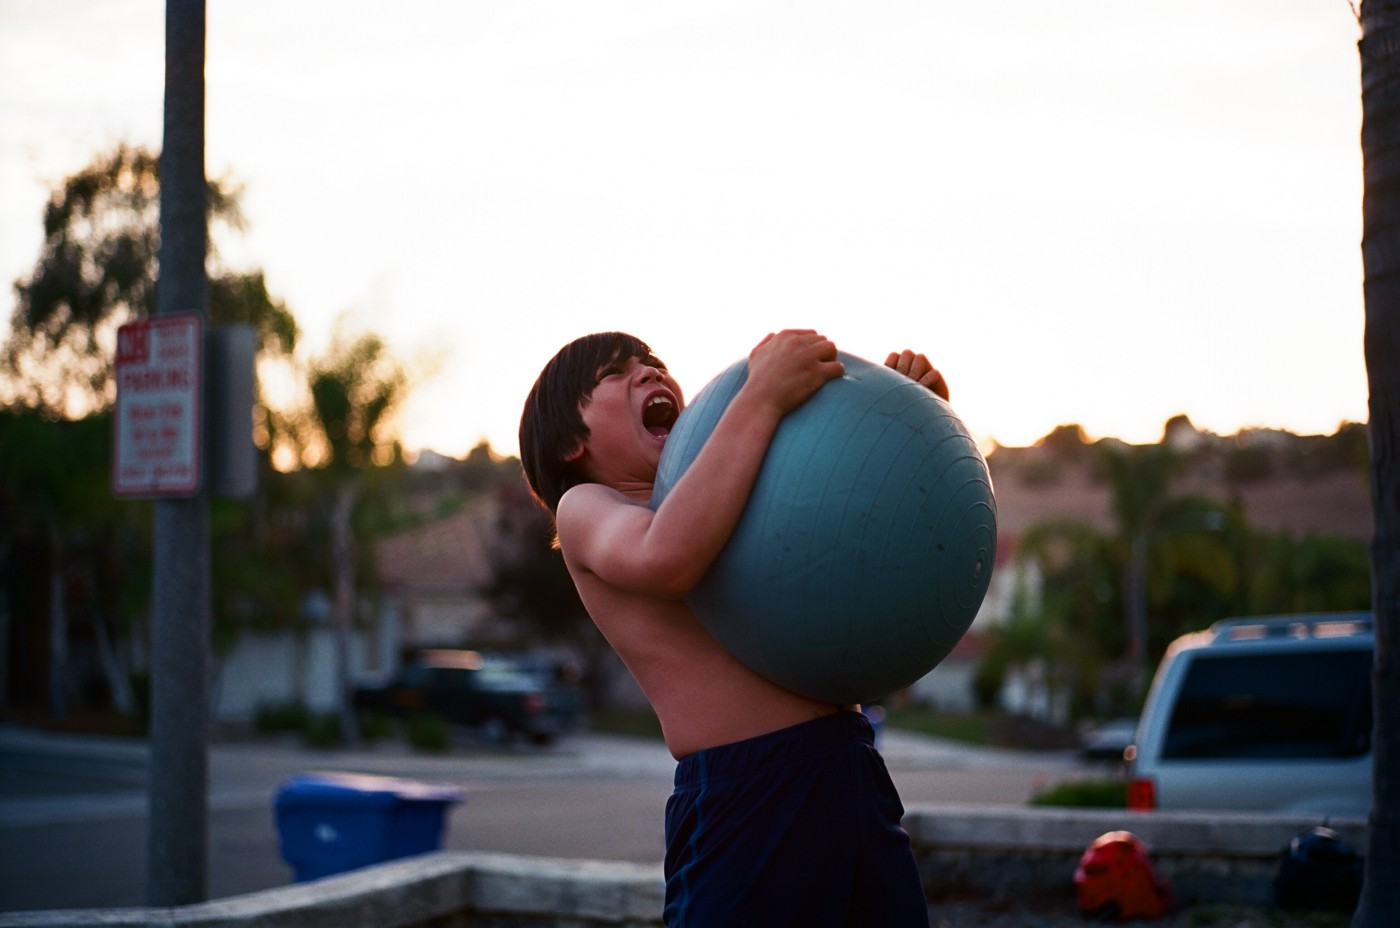 young kid wrestling up a yoga ball in the gym